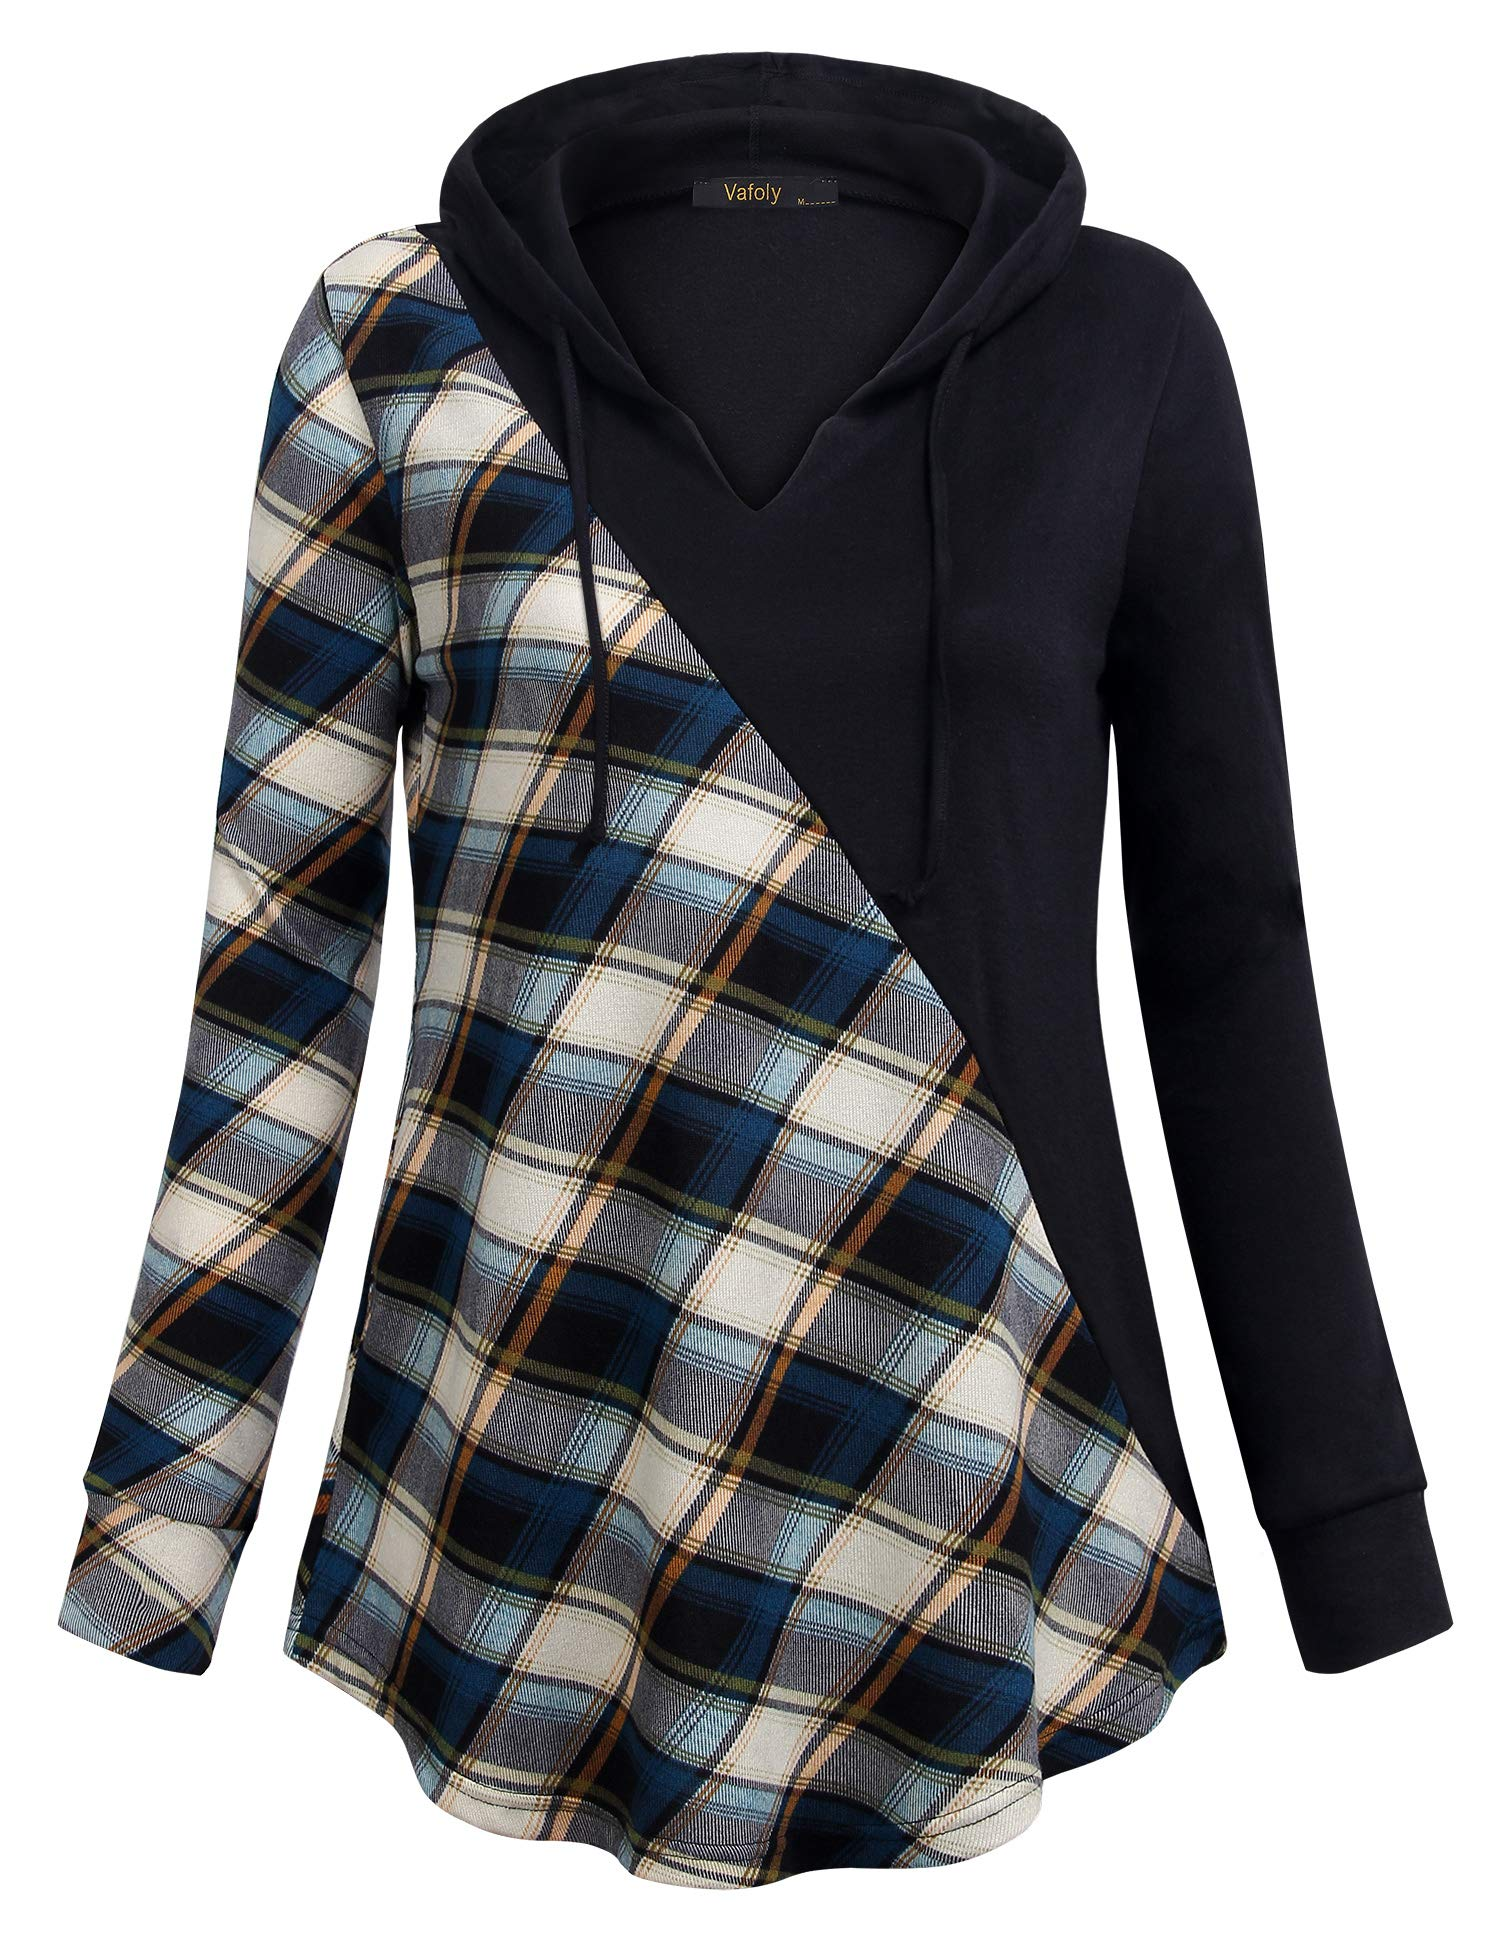 Vafoly Sweatshirt Tunic Women, Hoodies for Fall Plaid Long Sleeve Top Sport Easy Fit Cozy Soft V Neck Swing Tunic Hoodie Blue and Beige L